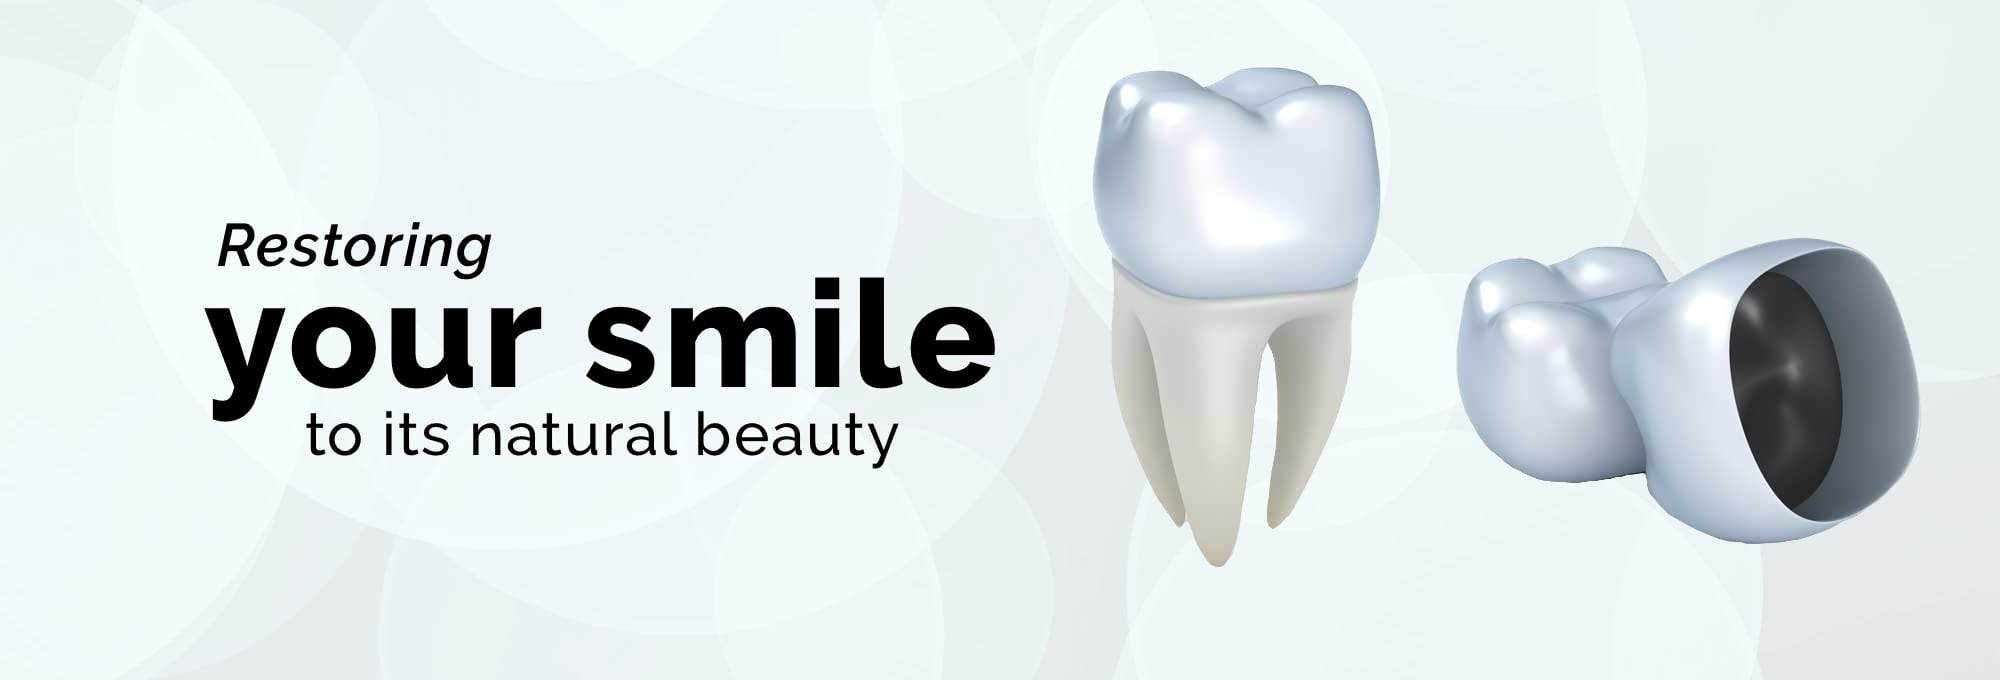 Restore your smile with Dental Crowns